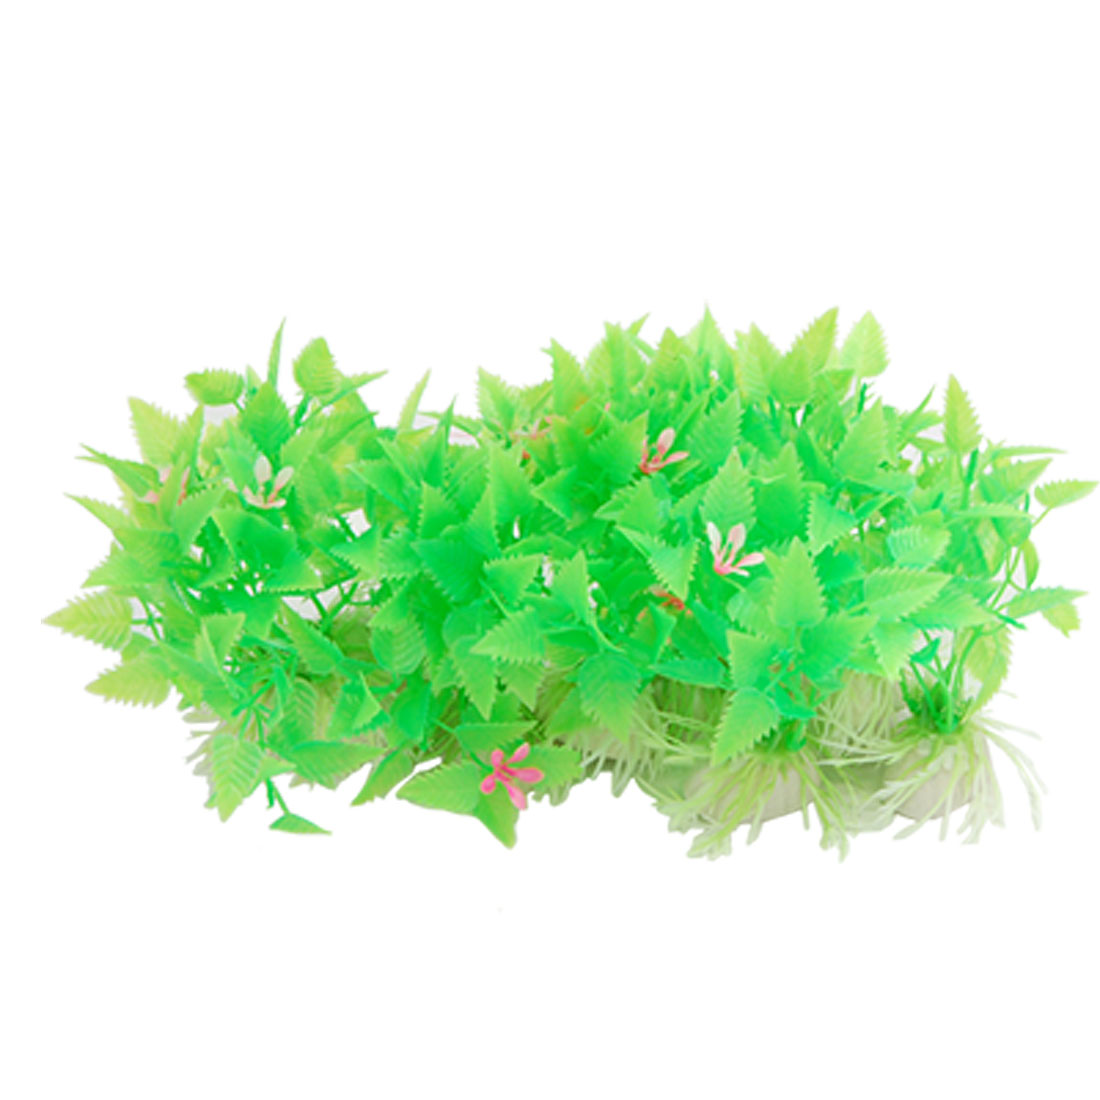 Decorative Mini Plastic Plants for Fish Tank Aquarium